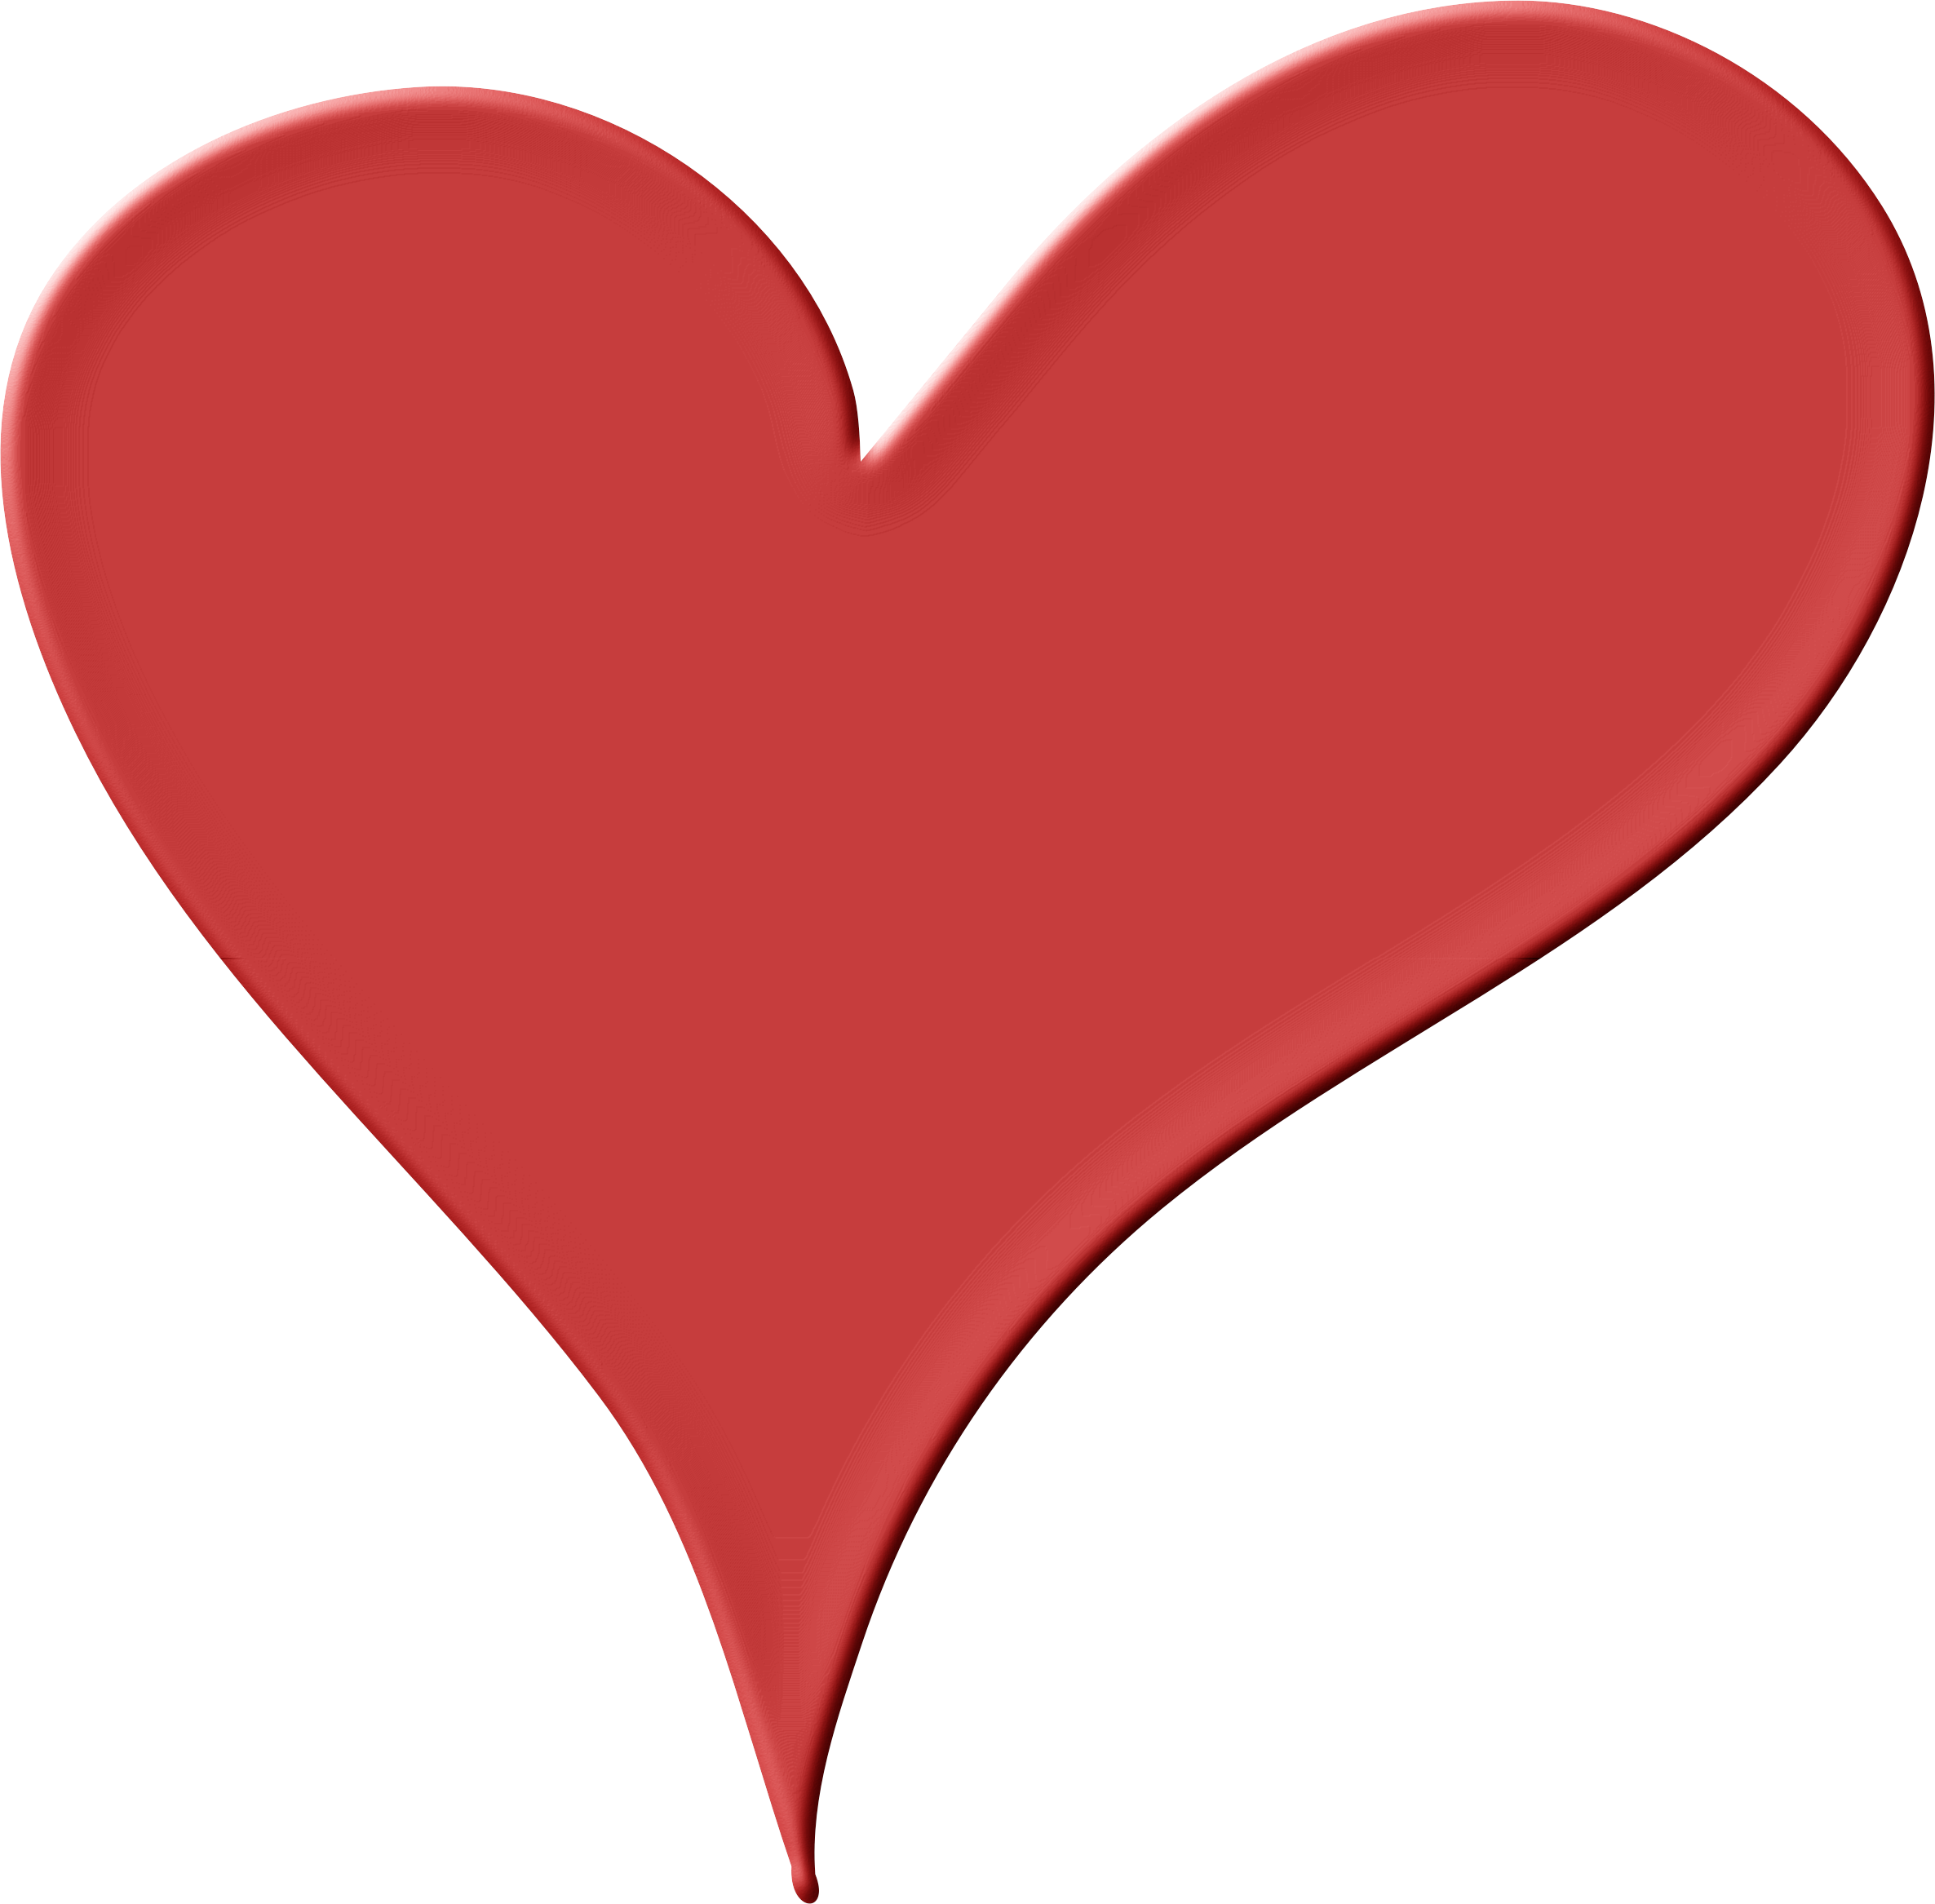 Drawn red heart clipart clip transparent Clipart - Heart in Red clip transparent